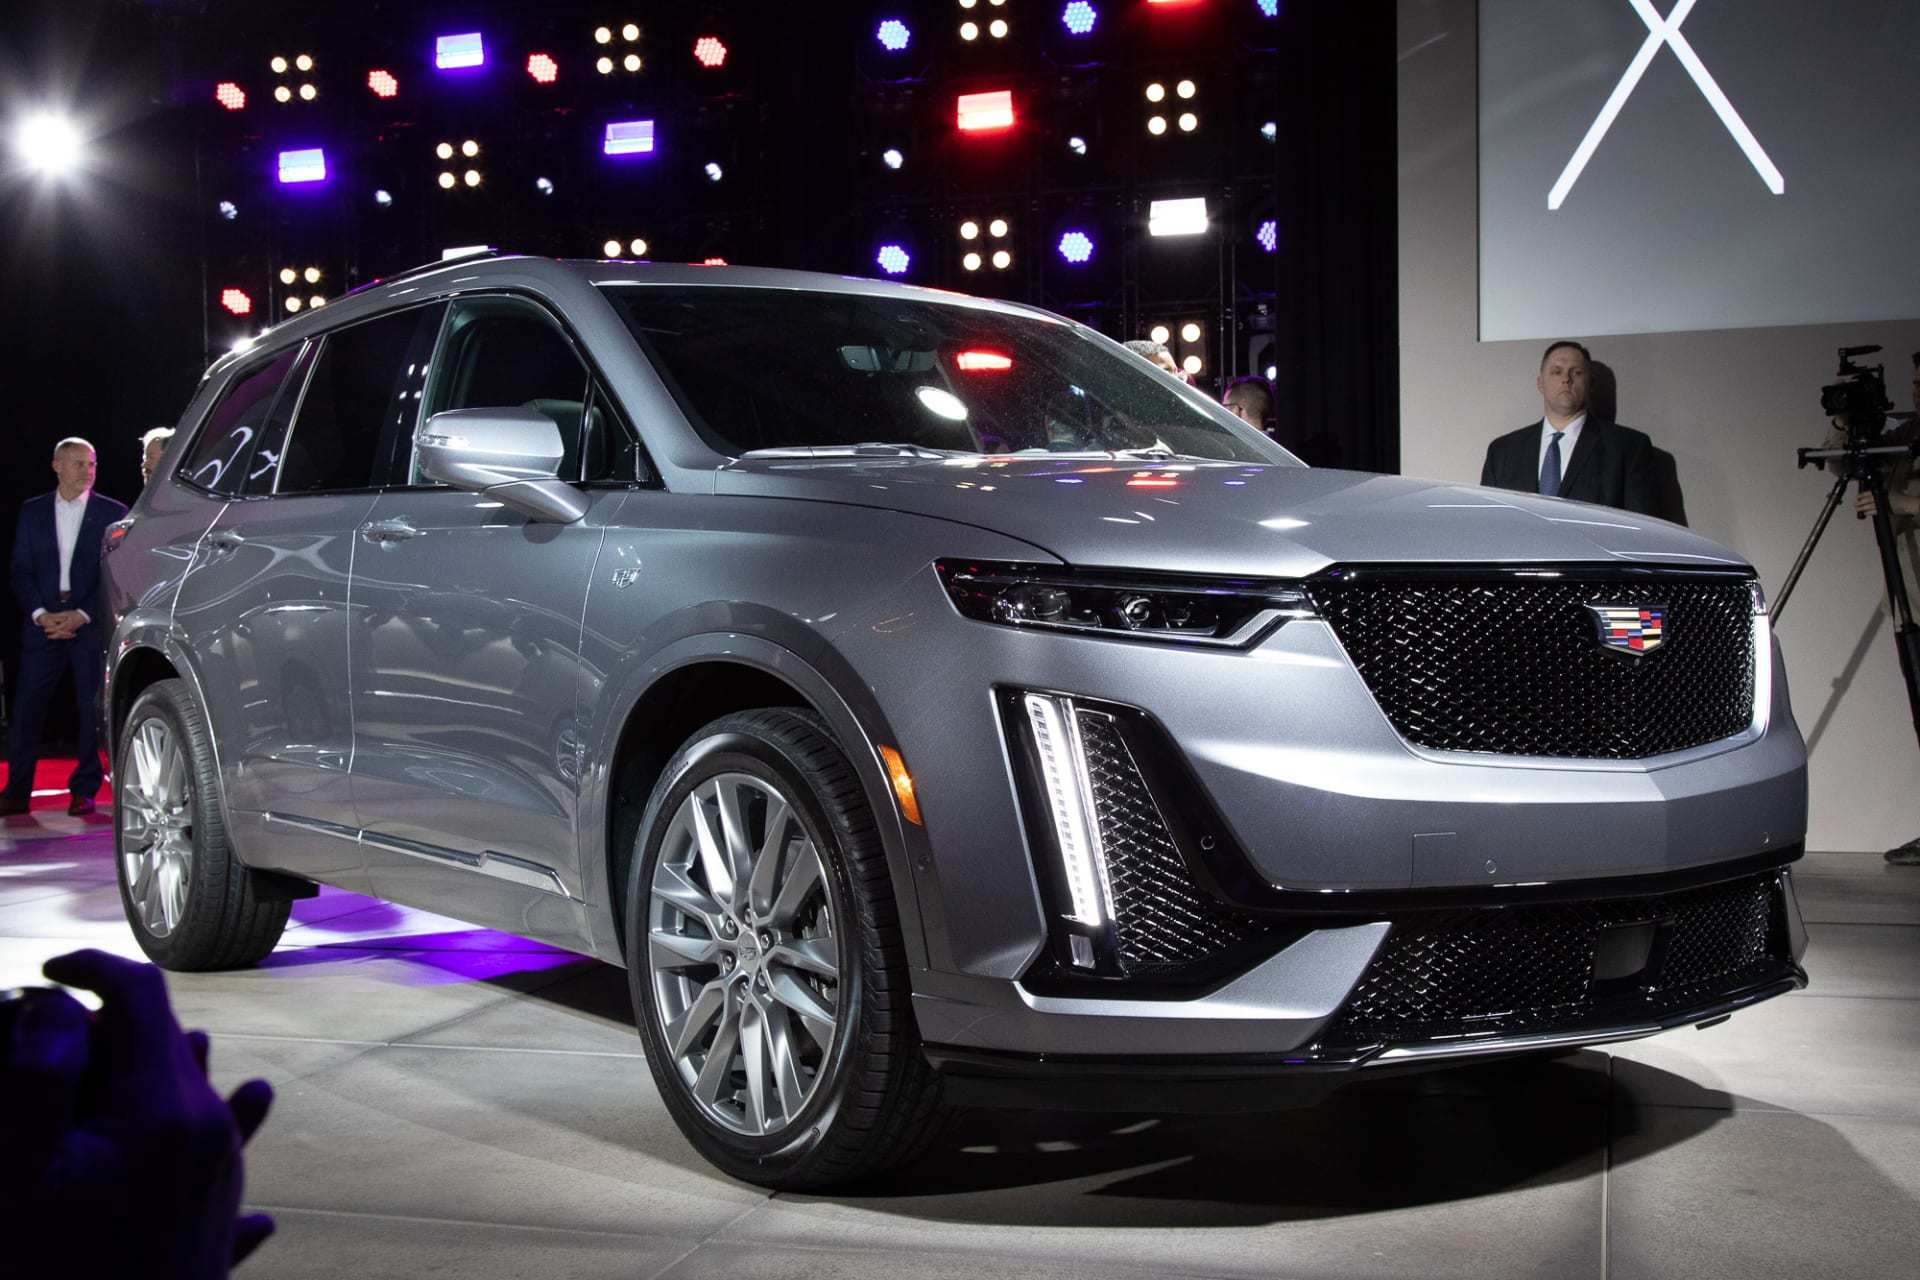 59 The Best Cadillac X6 2020 History